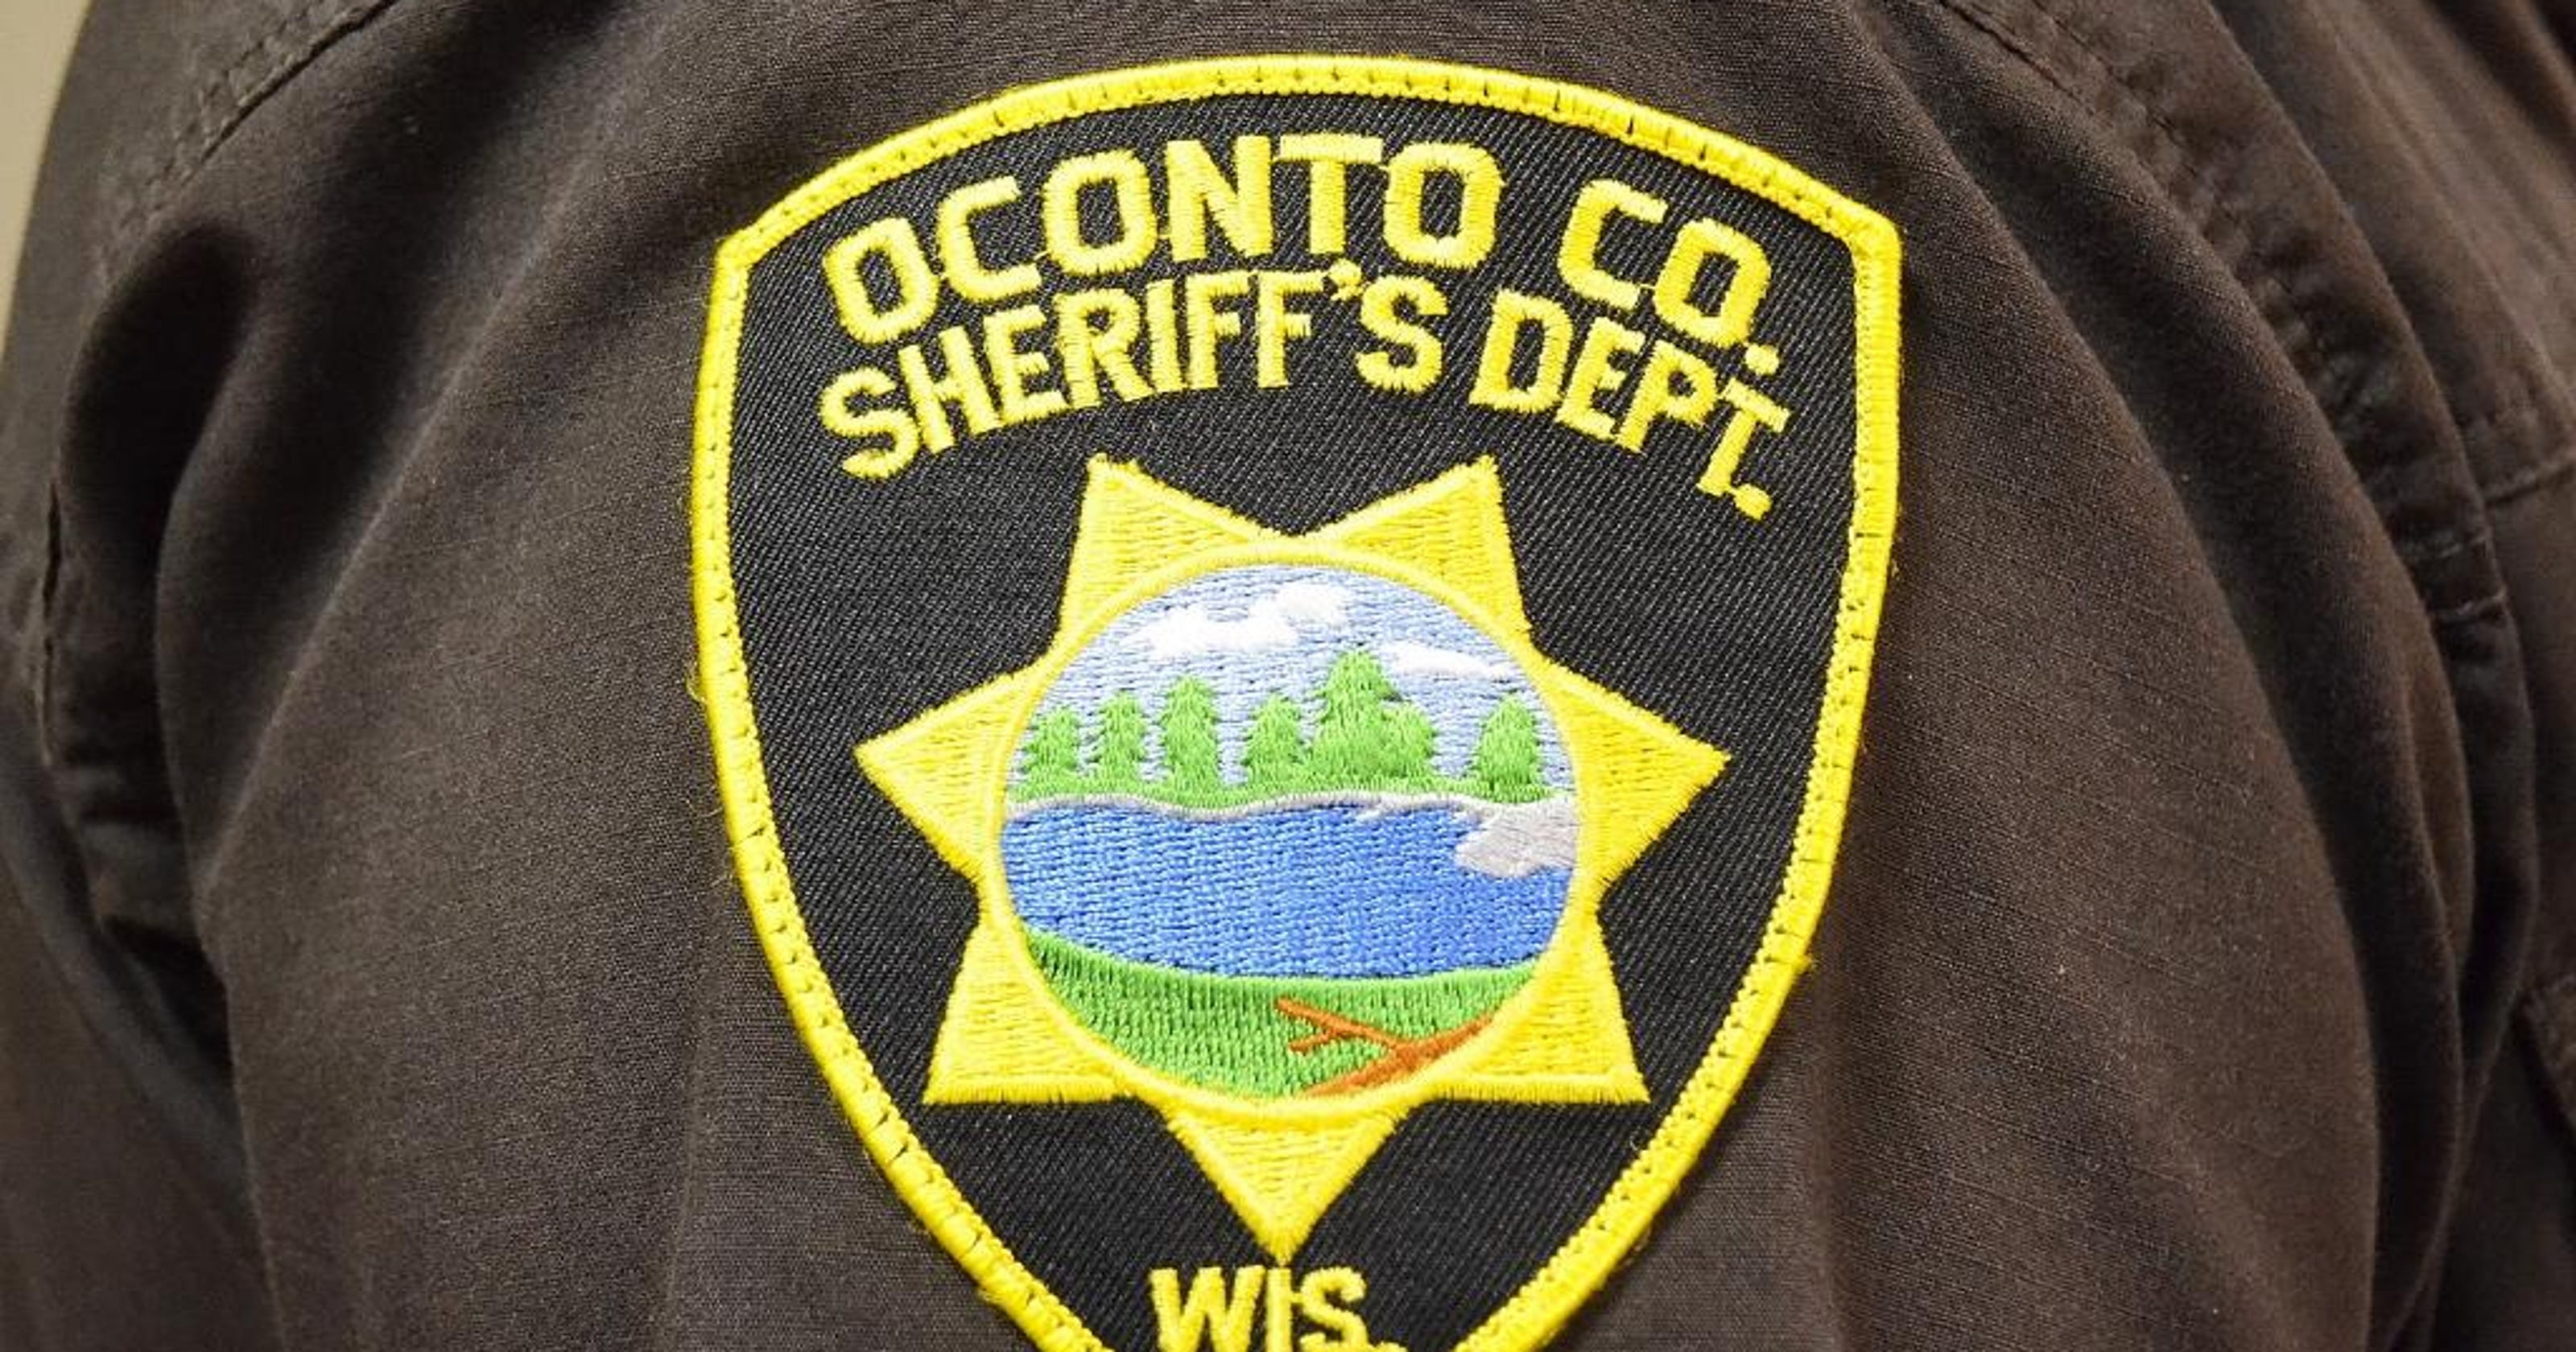 Oconto Co. Sheriff's blotter: Business reports $23K credit card theft - Green Bay Press Gazette